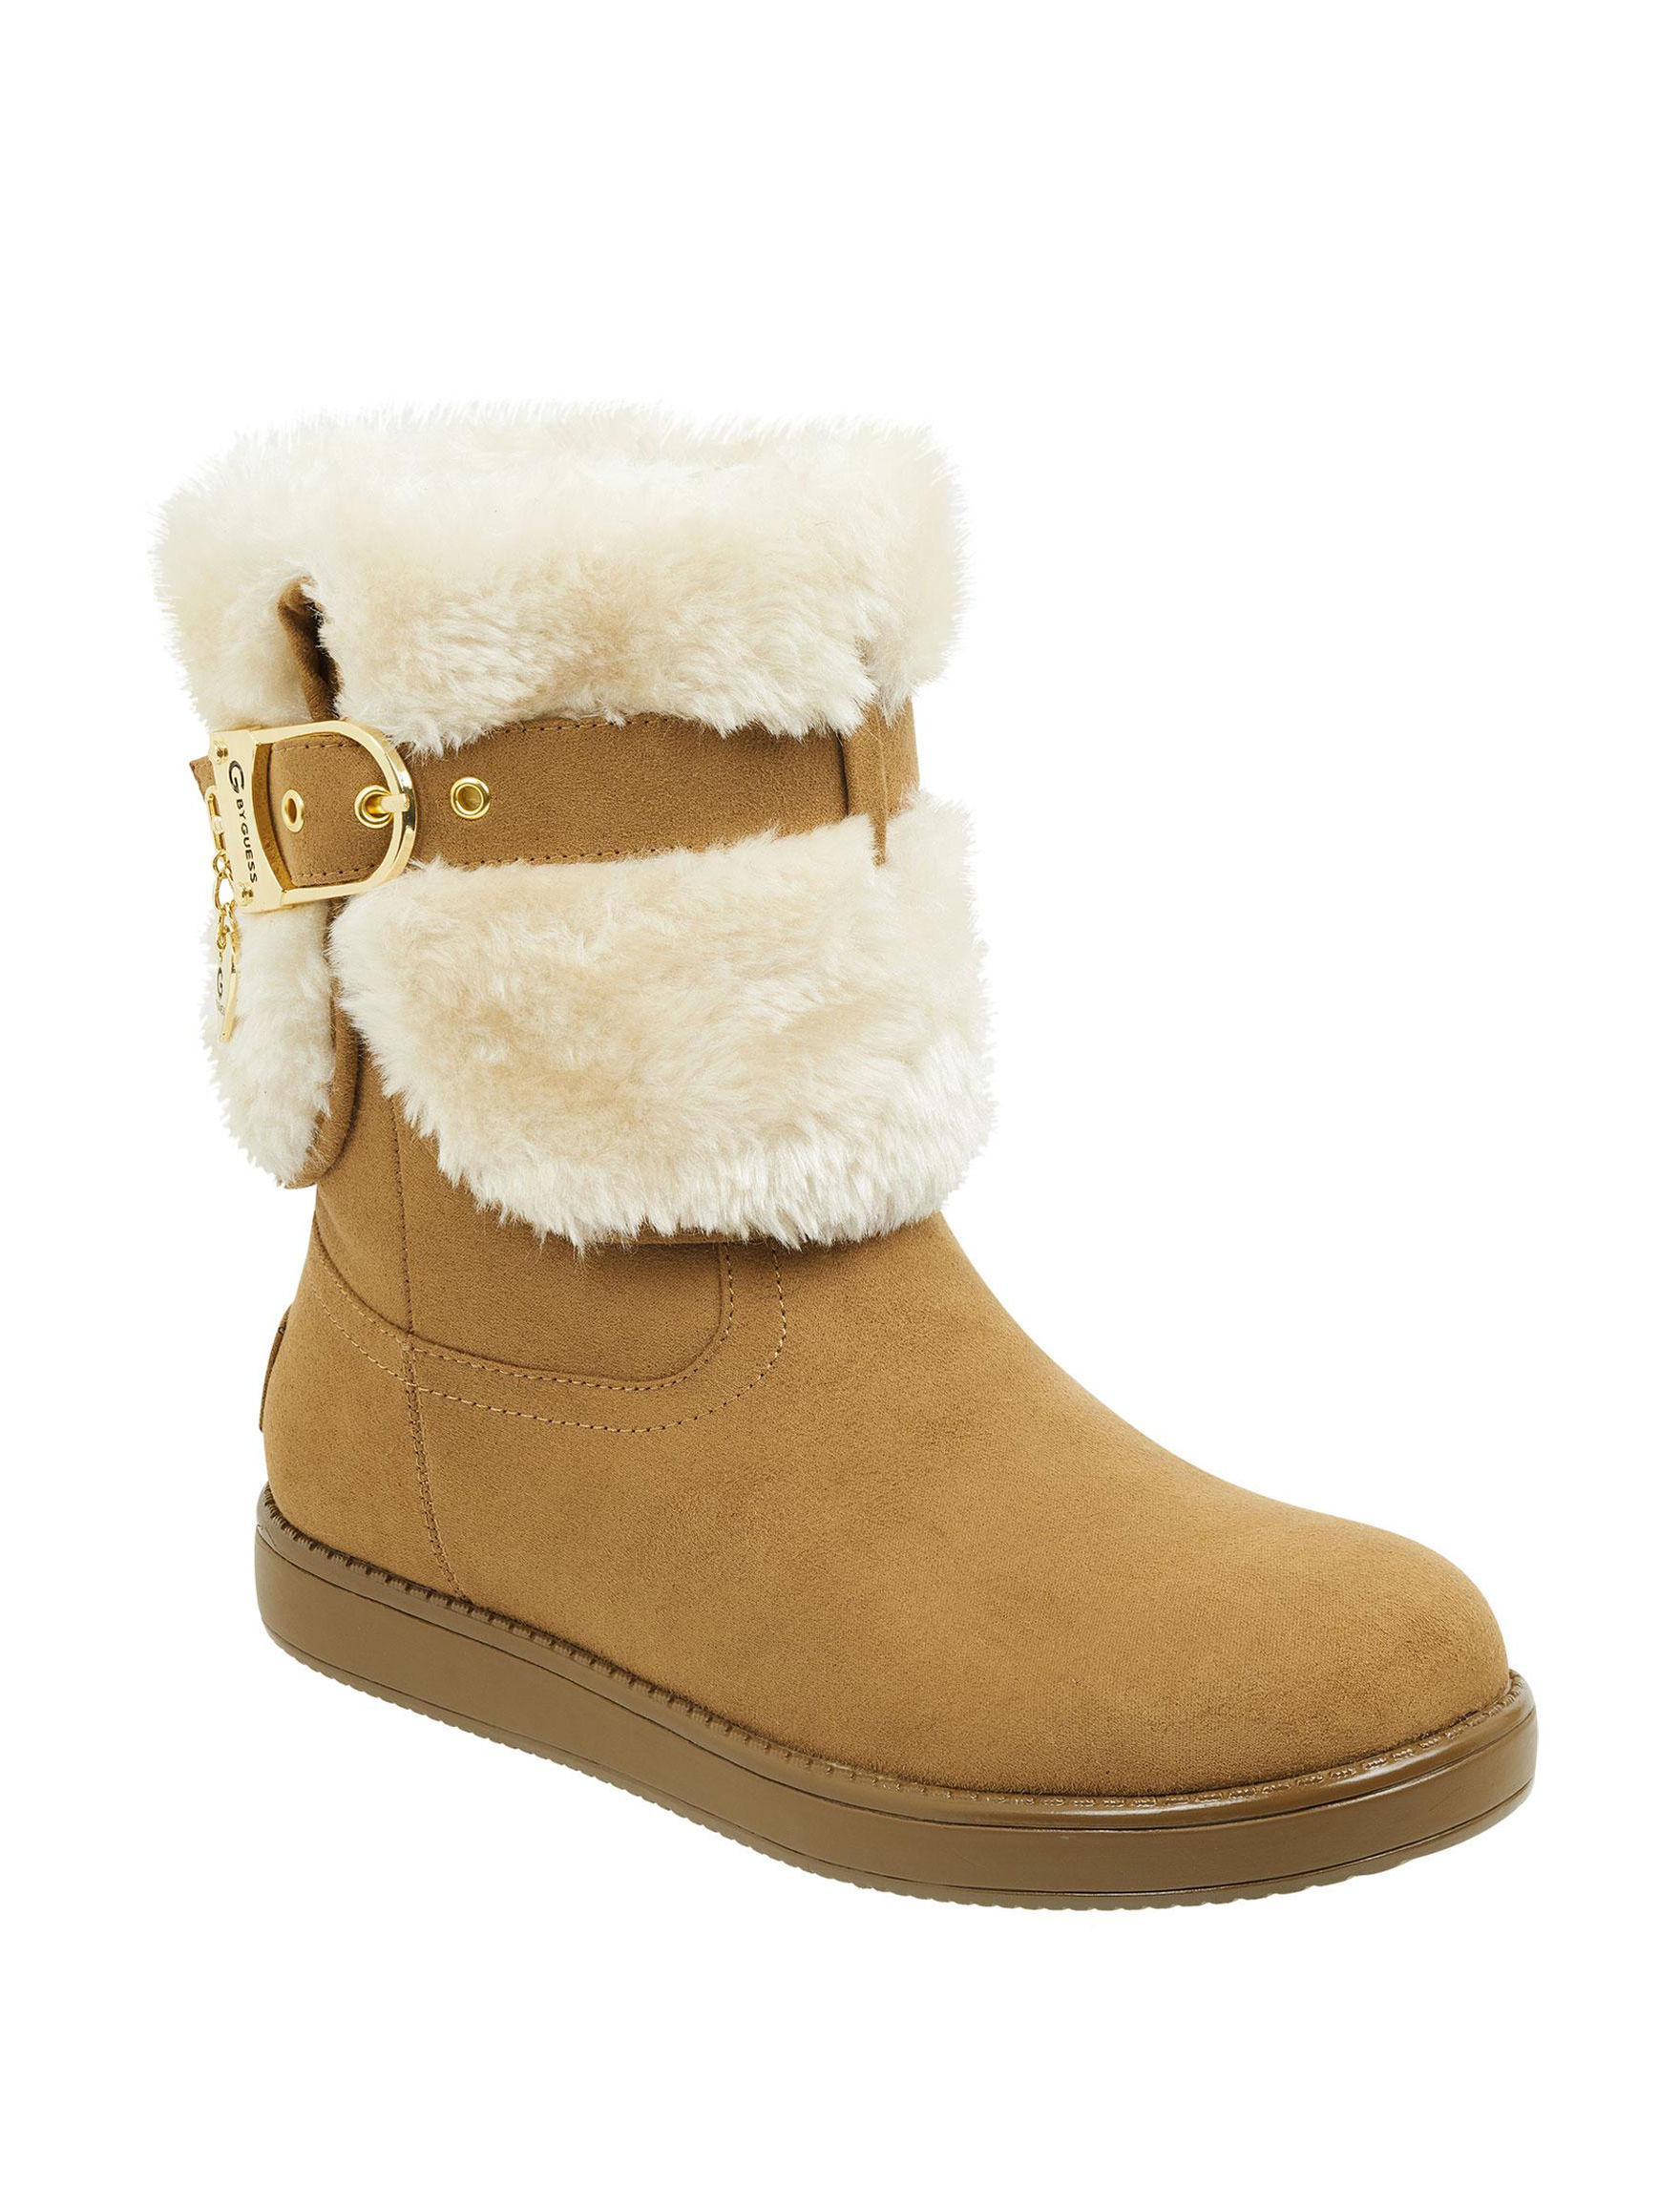 G by Guess Brown Winter Boots